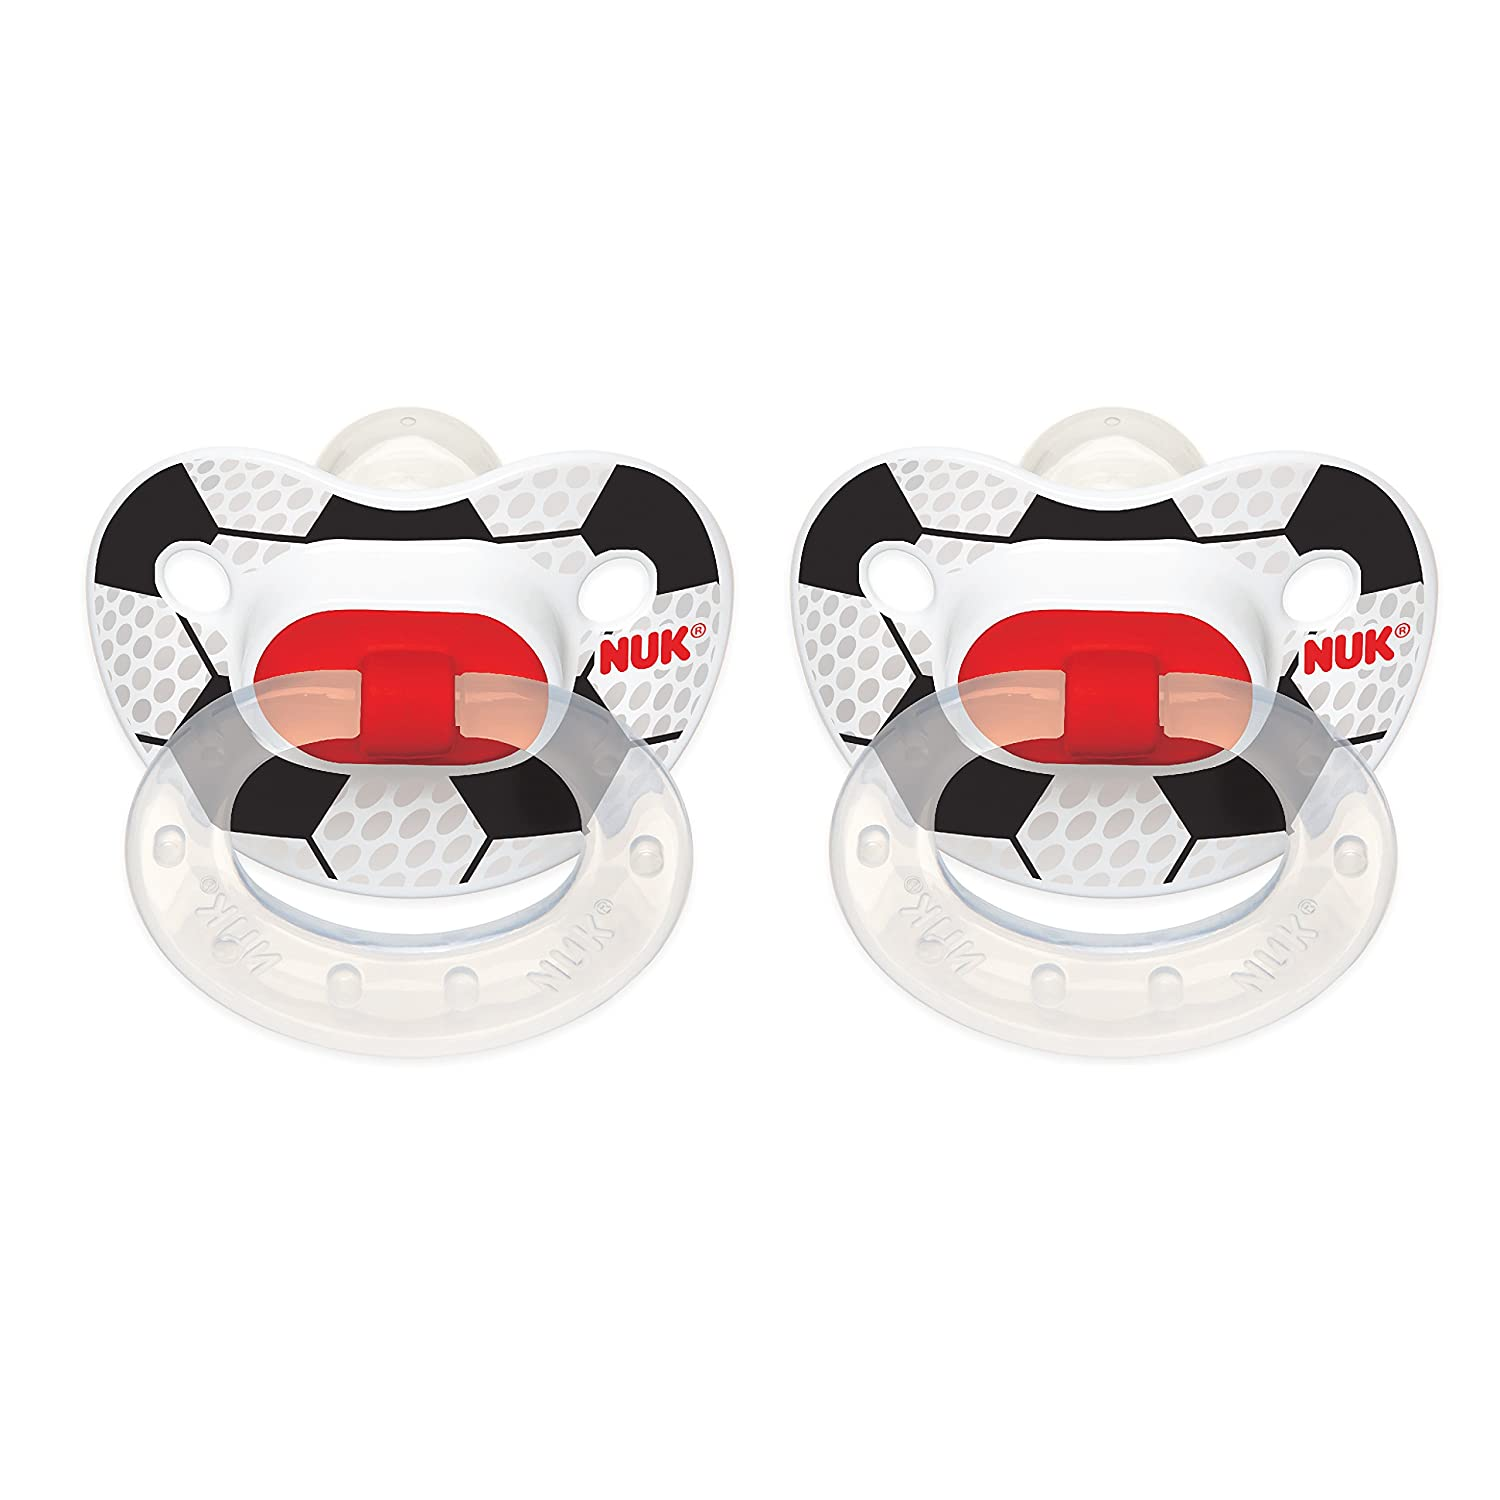 NUK Puller Pacifier, 6-18 Months, Sports/Assorted Colors, 1 pk